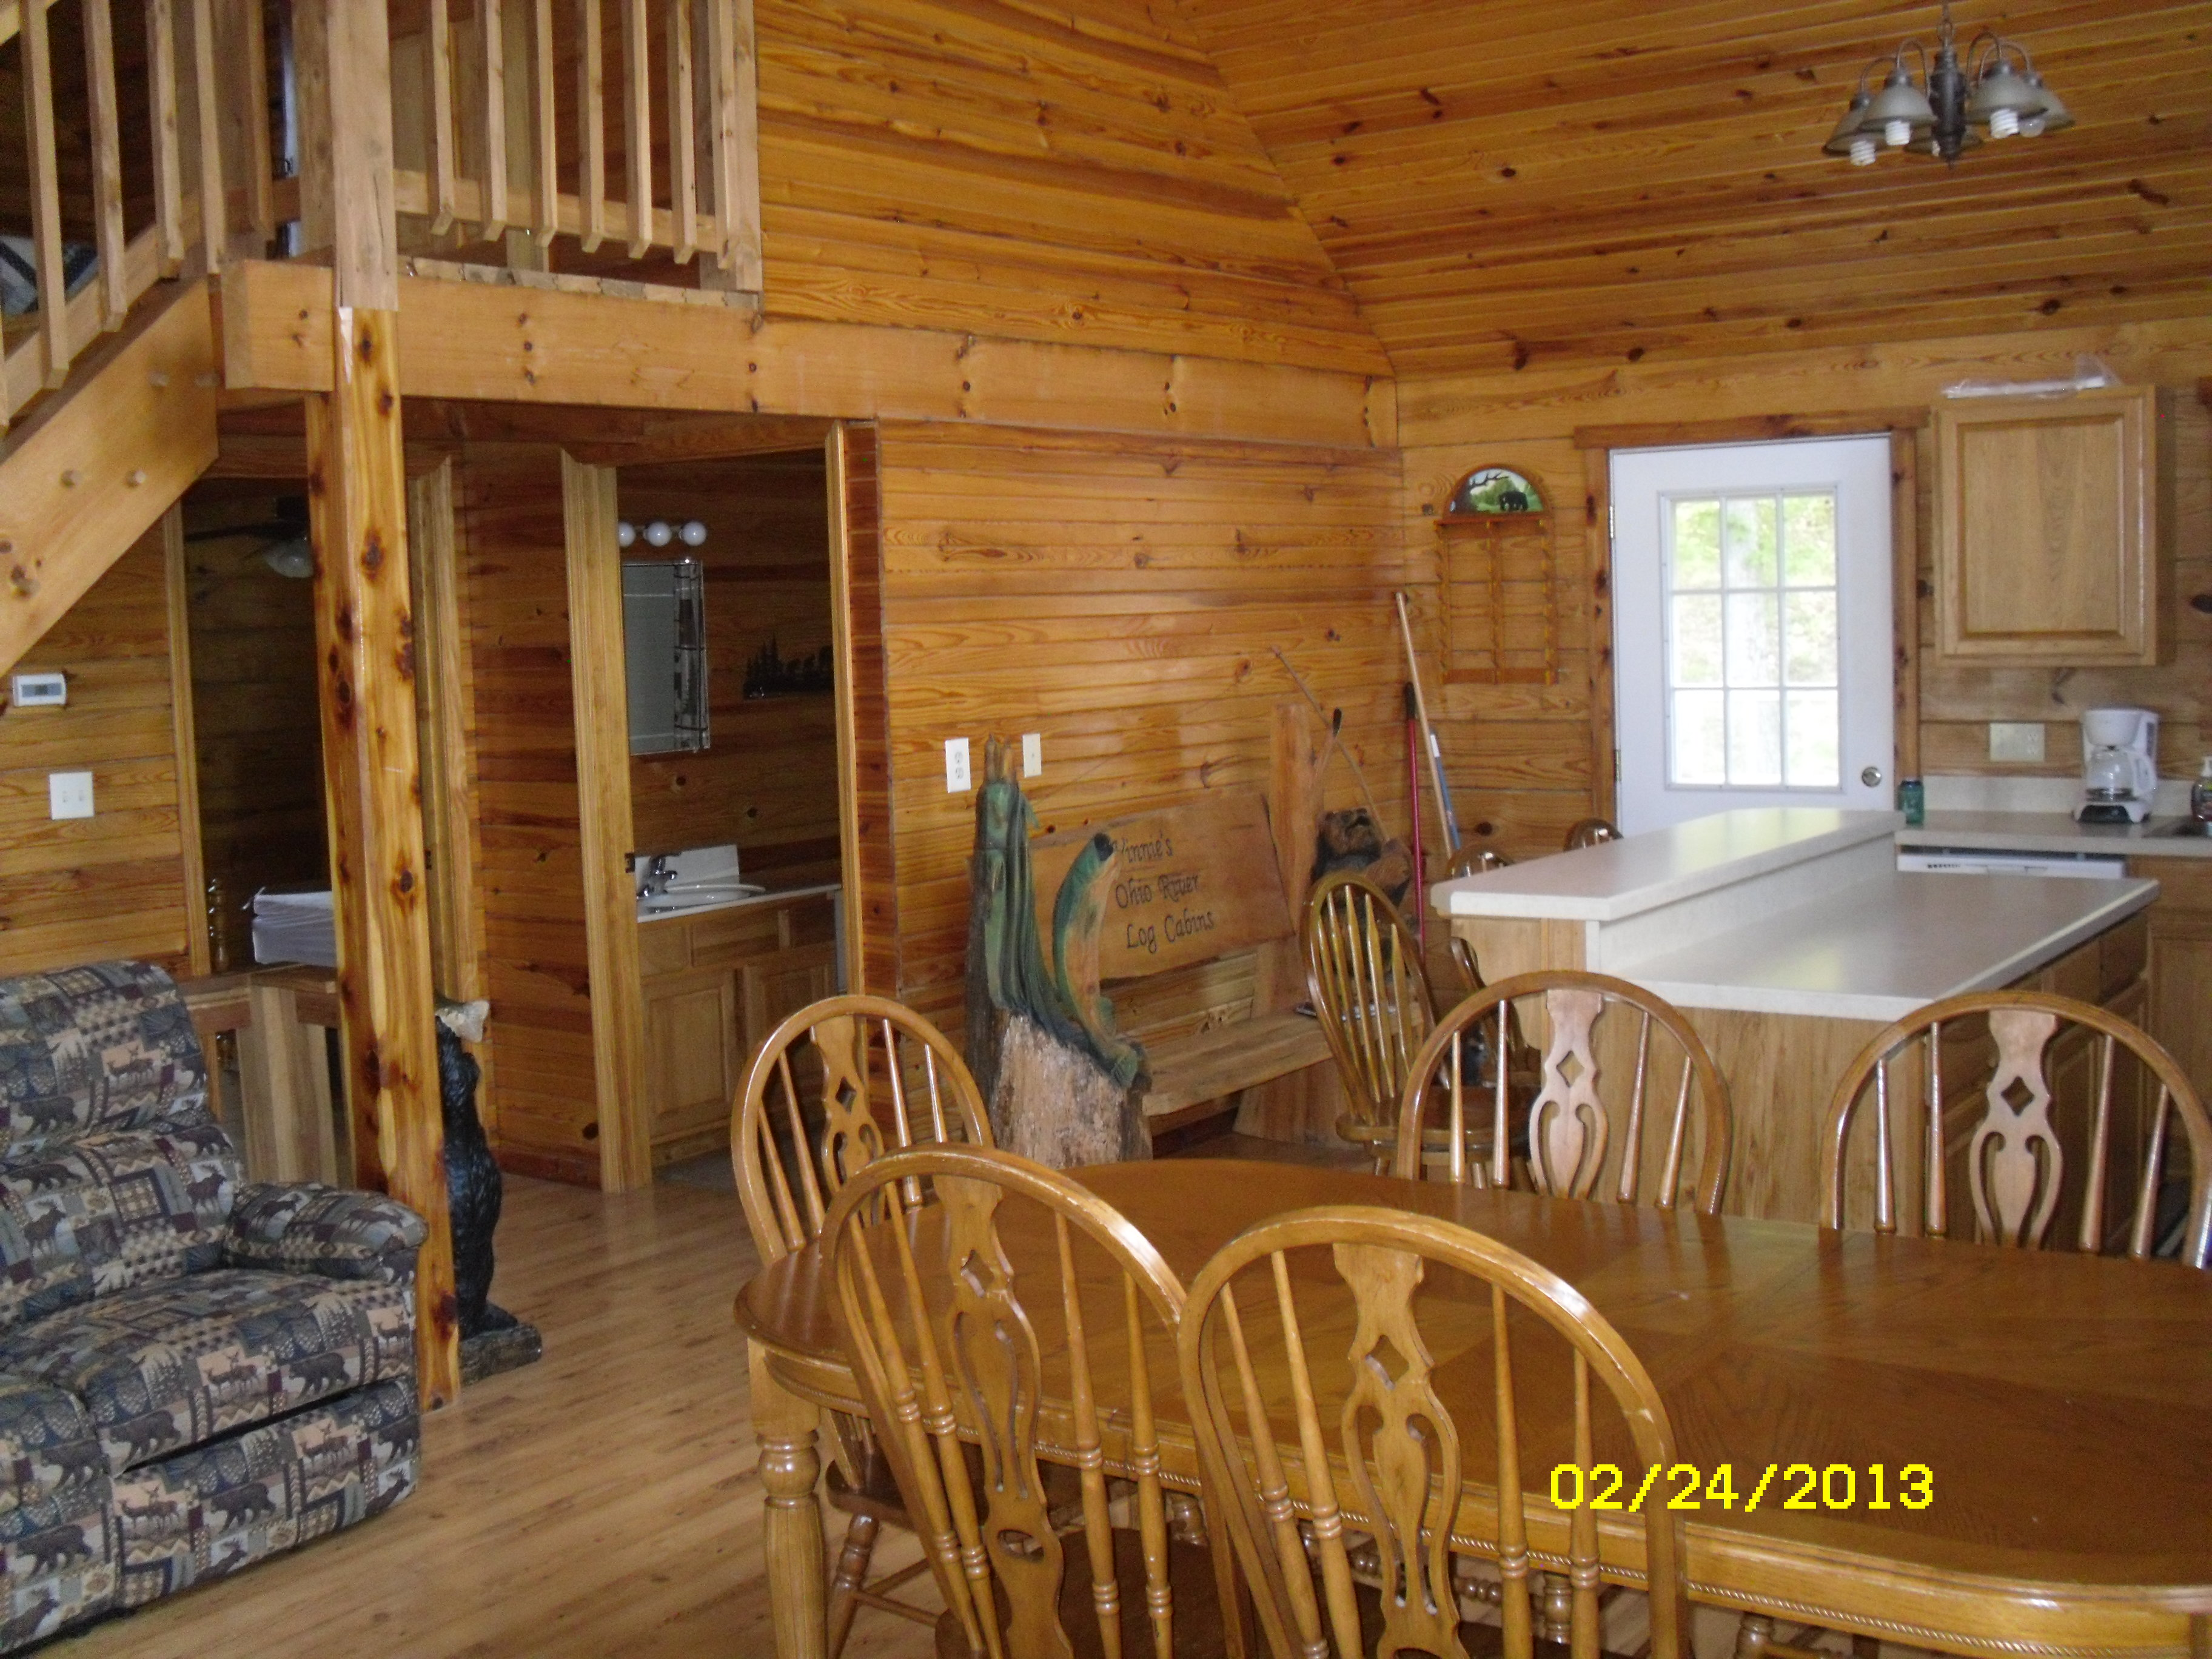 punderson rent at b state up ohio manor park cabins people in to six for accommodate